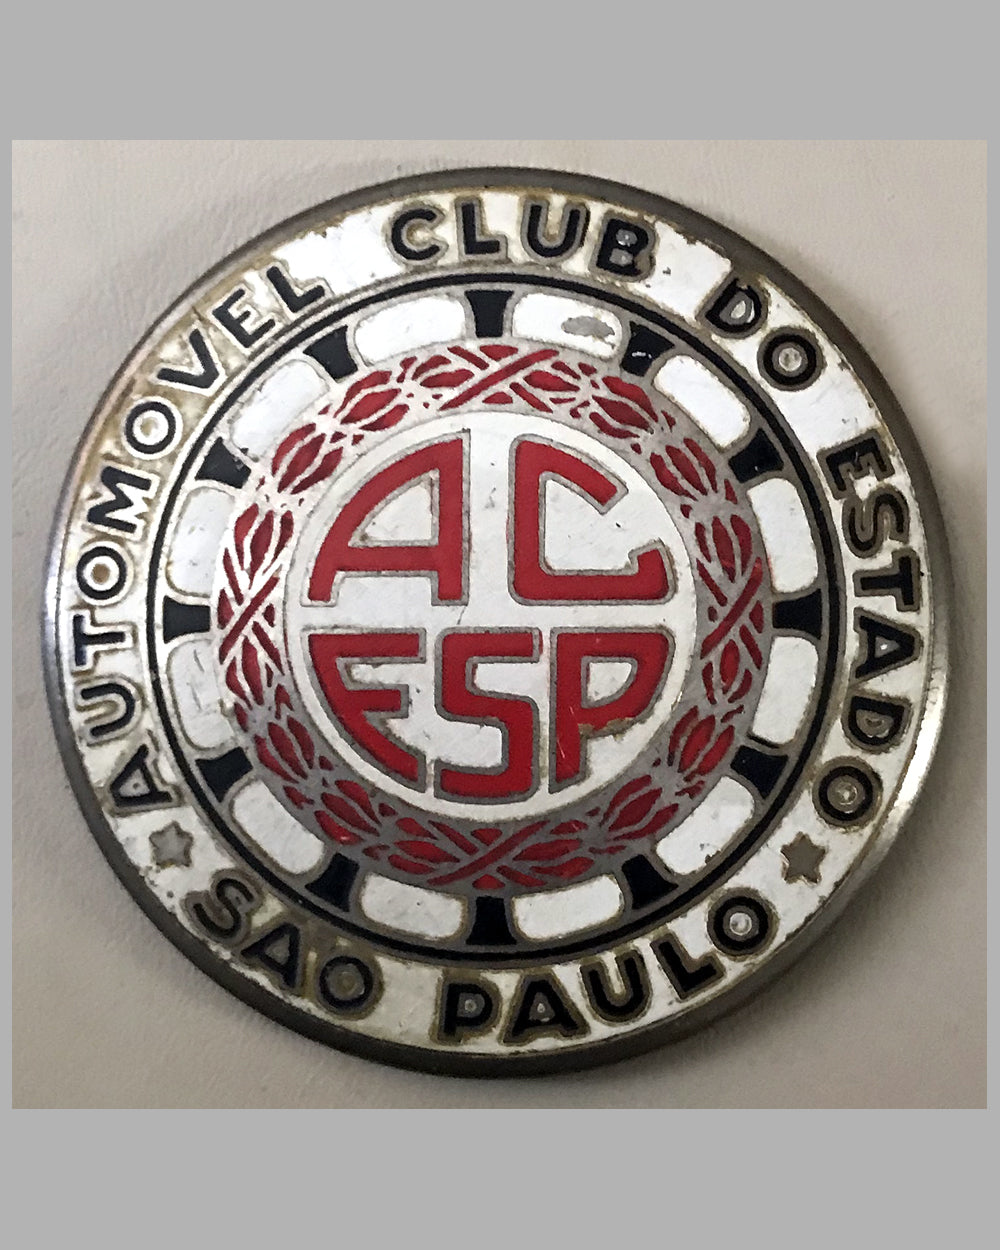 Automobile Club of the State of Sao Paulo grill badge